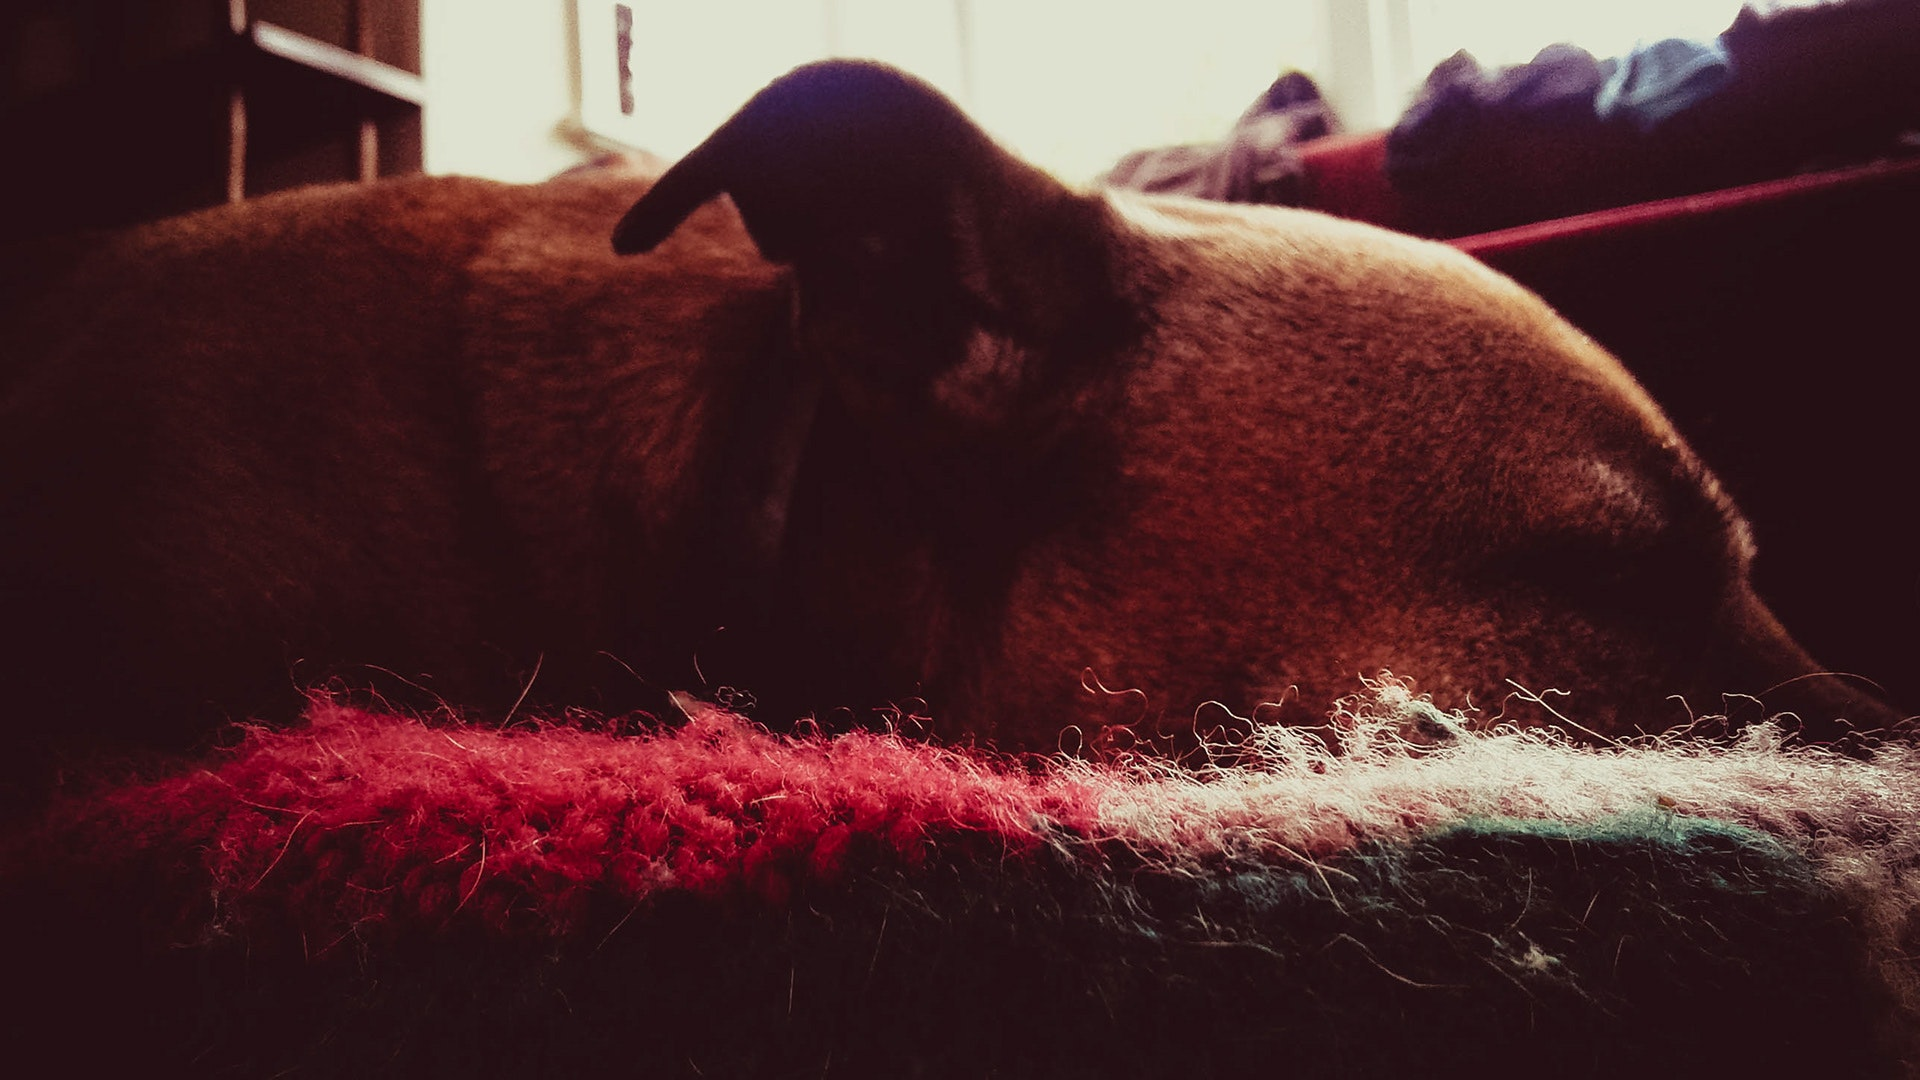 Dog on Area Mat, Adorable, Indoors, Sleeping, Side view, HQ Photo